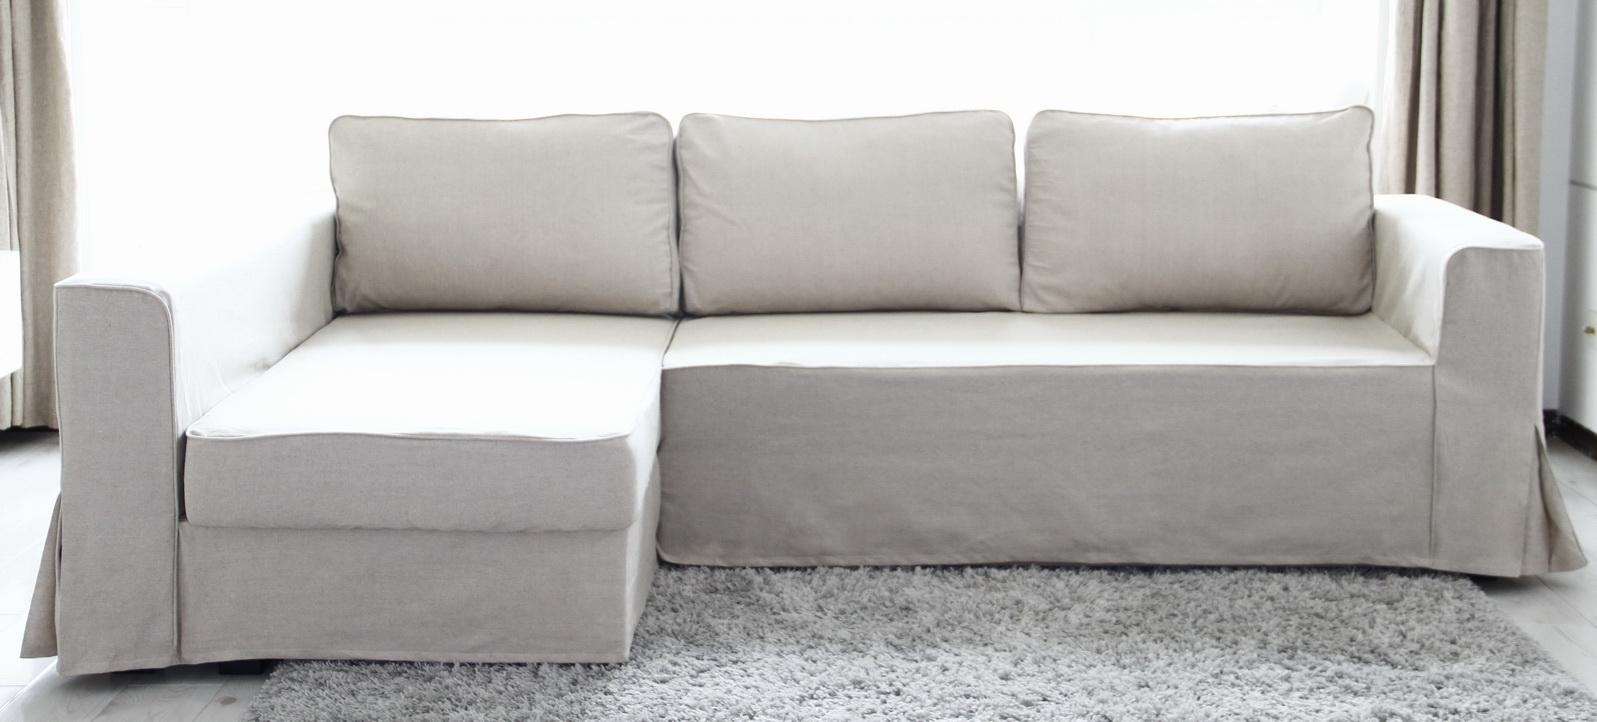 Featured Photo of Slipcovers For Chaise Lounge Sofas